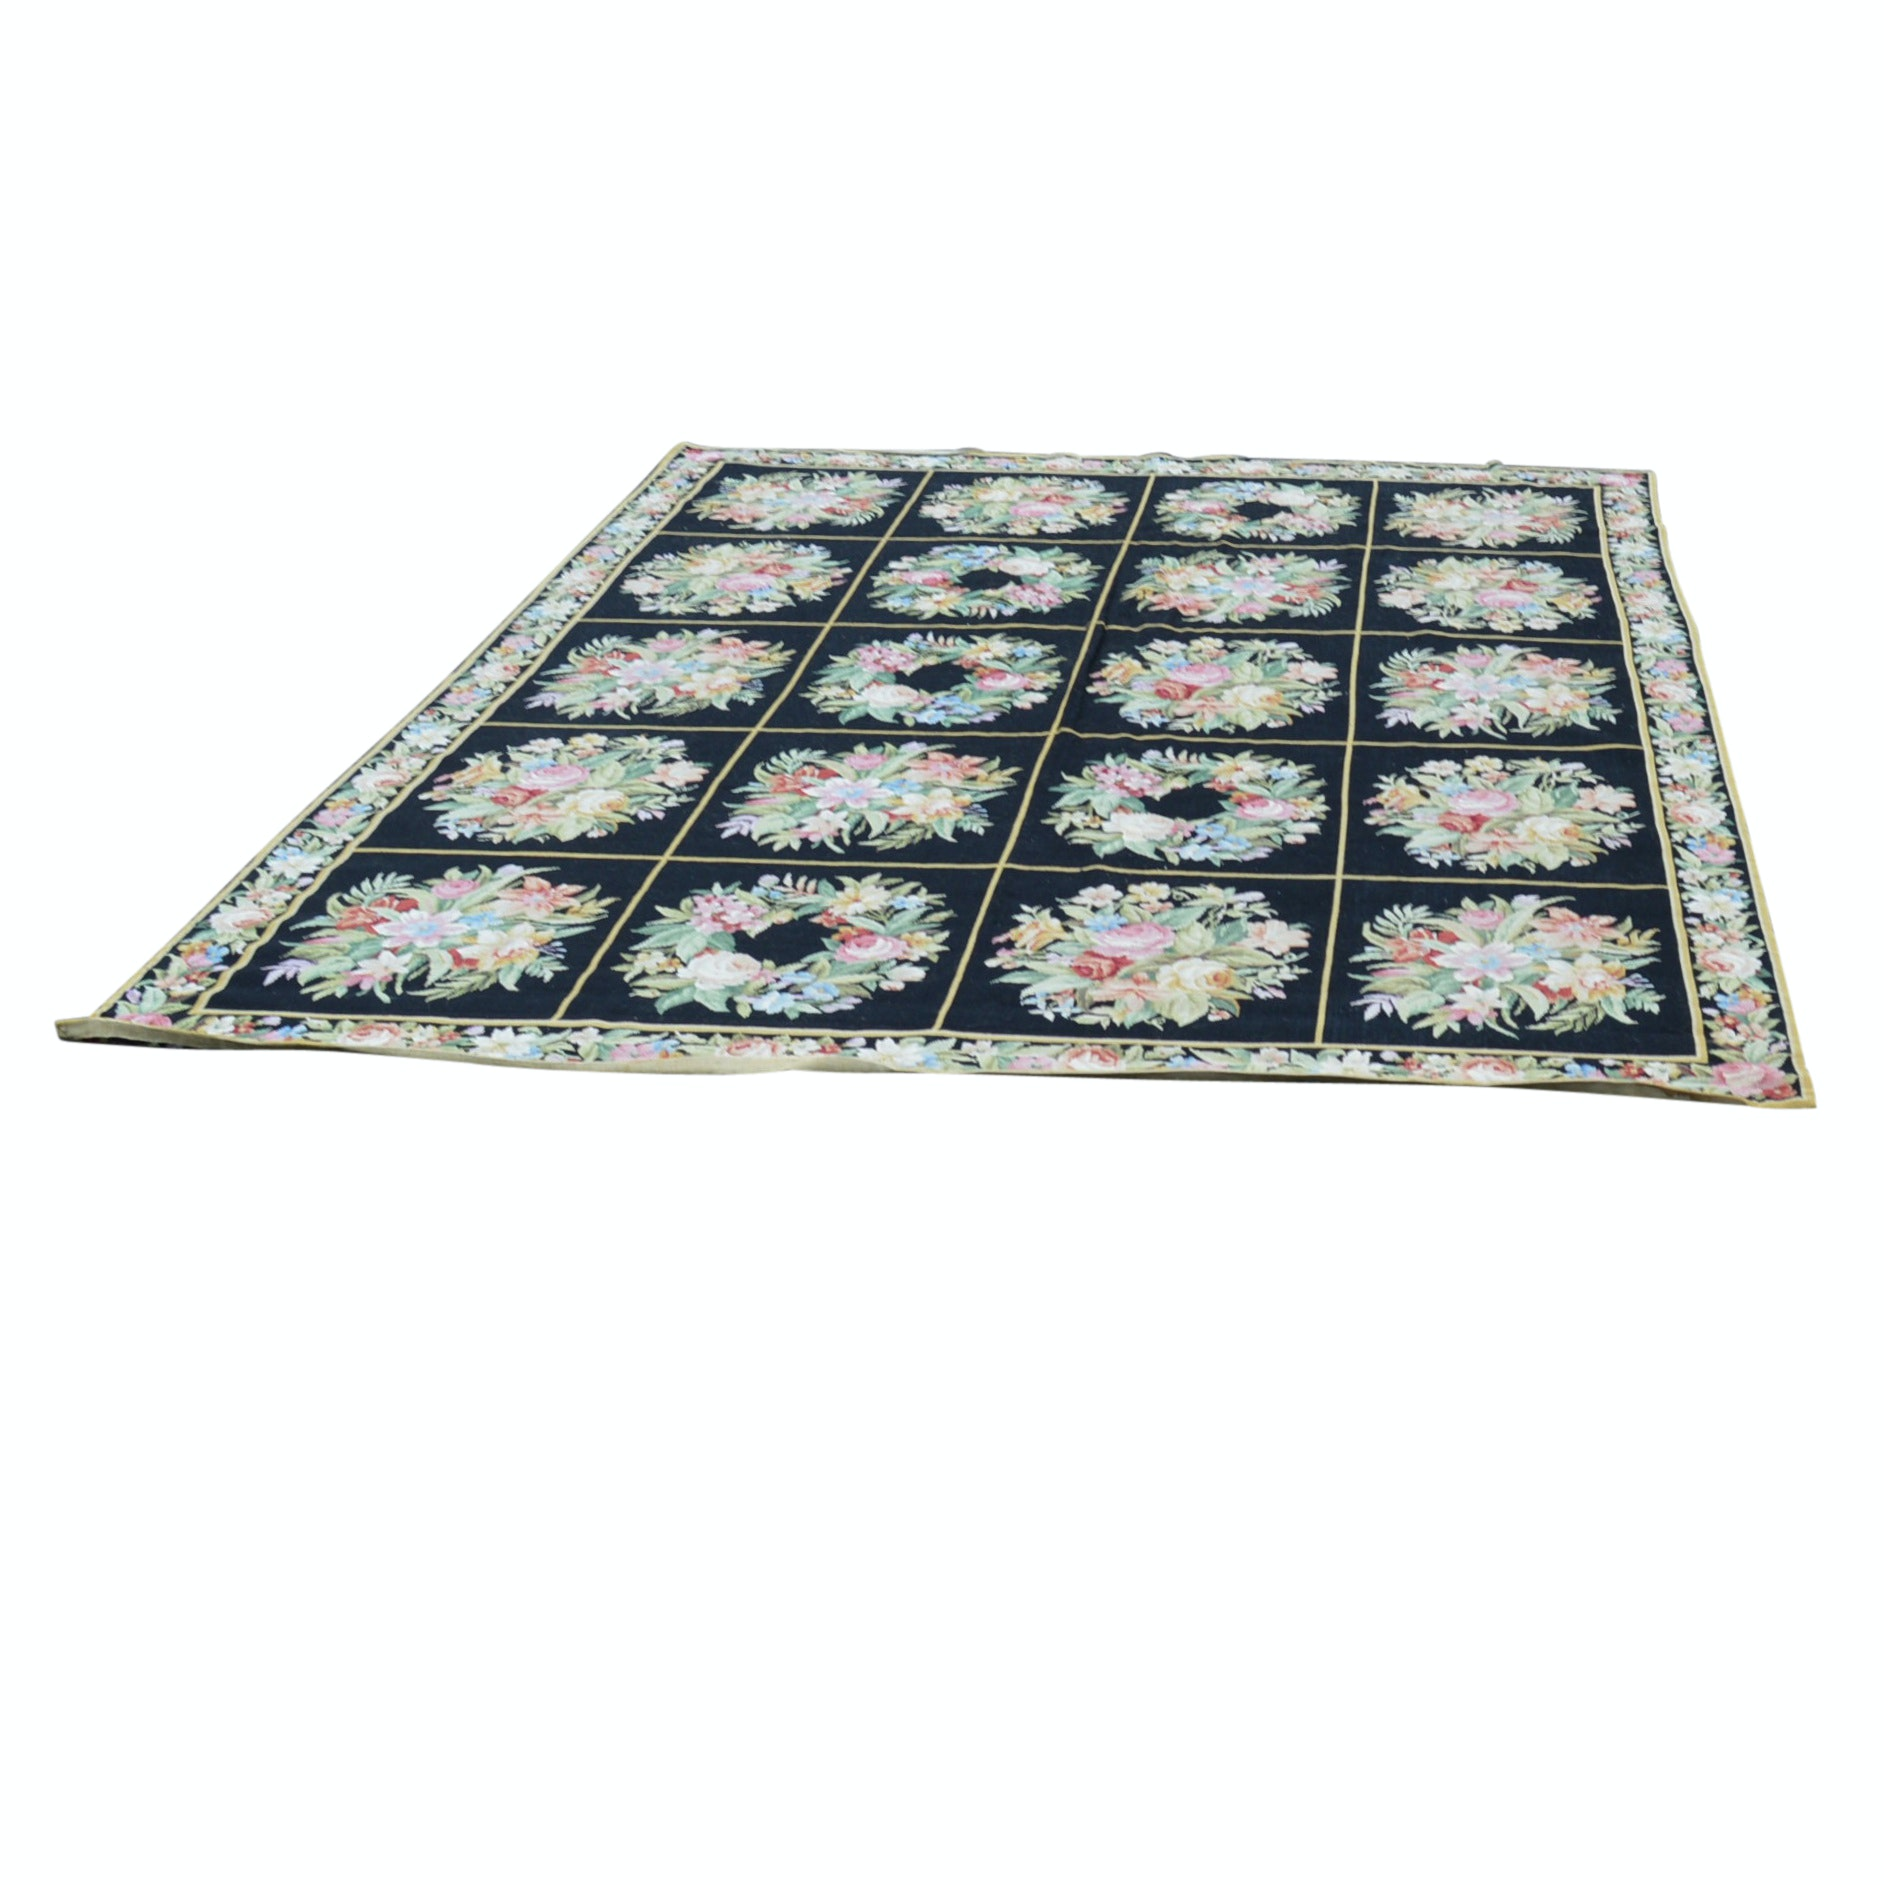 Needlepoint Floral Panel Wool Rug